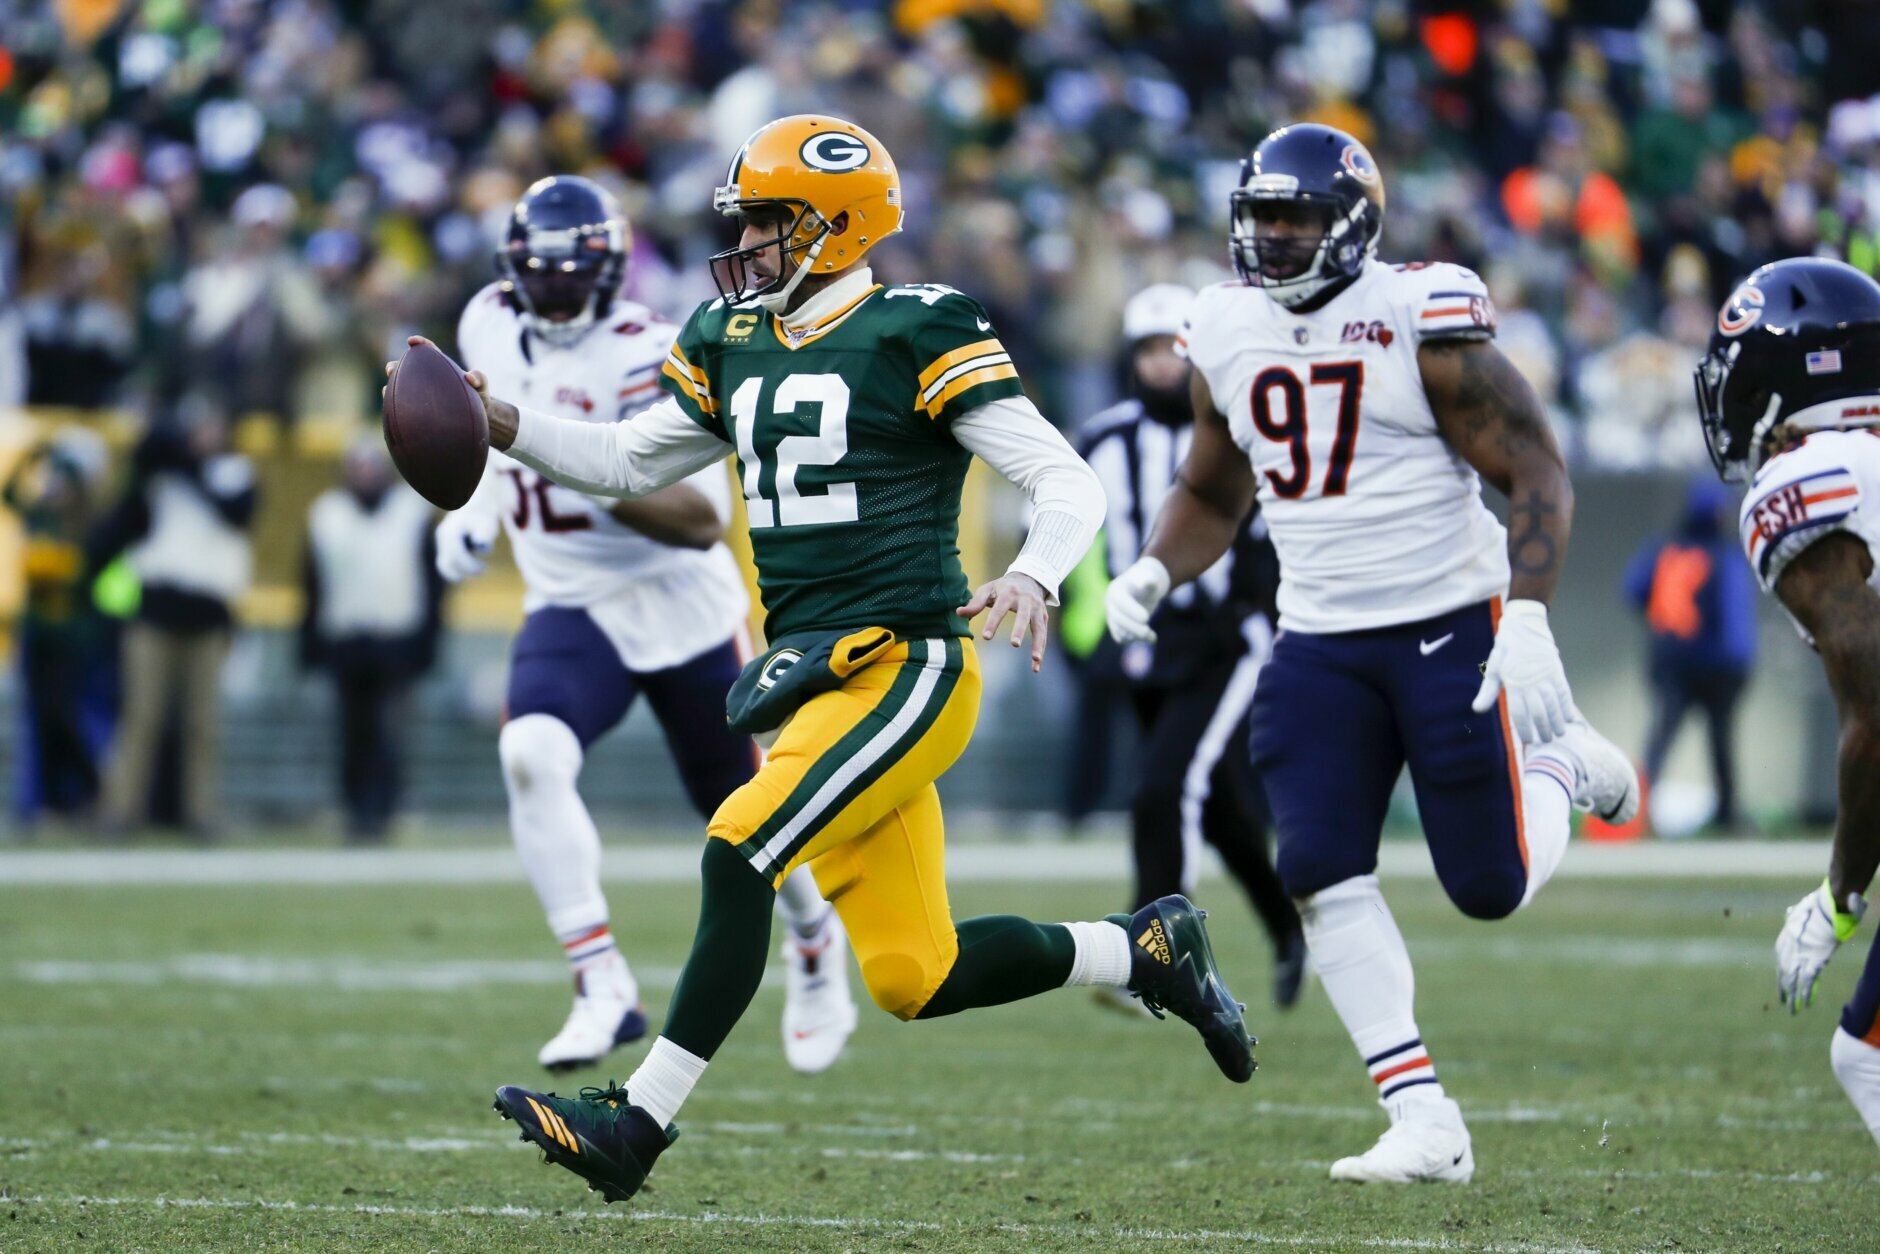 <p><b><i>Bears 13</i></b><br /> <b><i>Packers 21</i></b></p> <p>In the 200th meeting between these storied rivals, Green Bay clinched a playoff berth at Chicago&#8217;s expense, sweeping the regular season series for seventh time in the last 11 seasons and 15th time in the last 26 years. The Bears have a lot to answer for.</p>